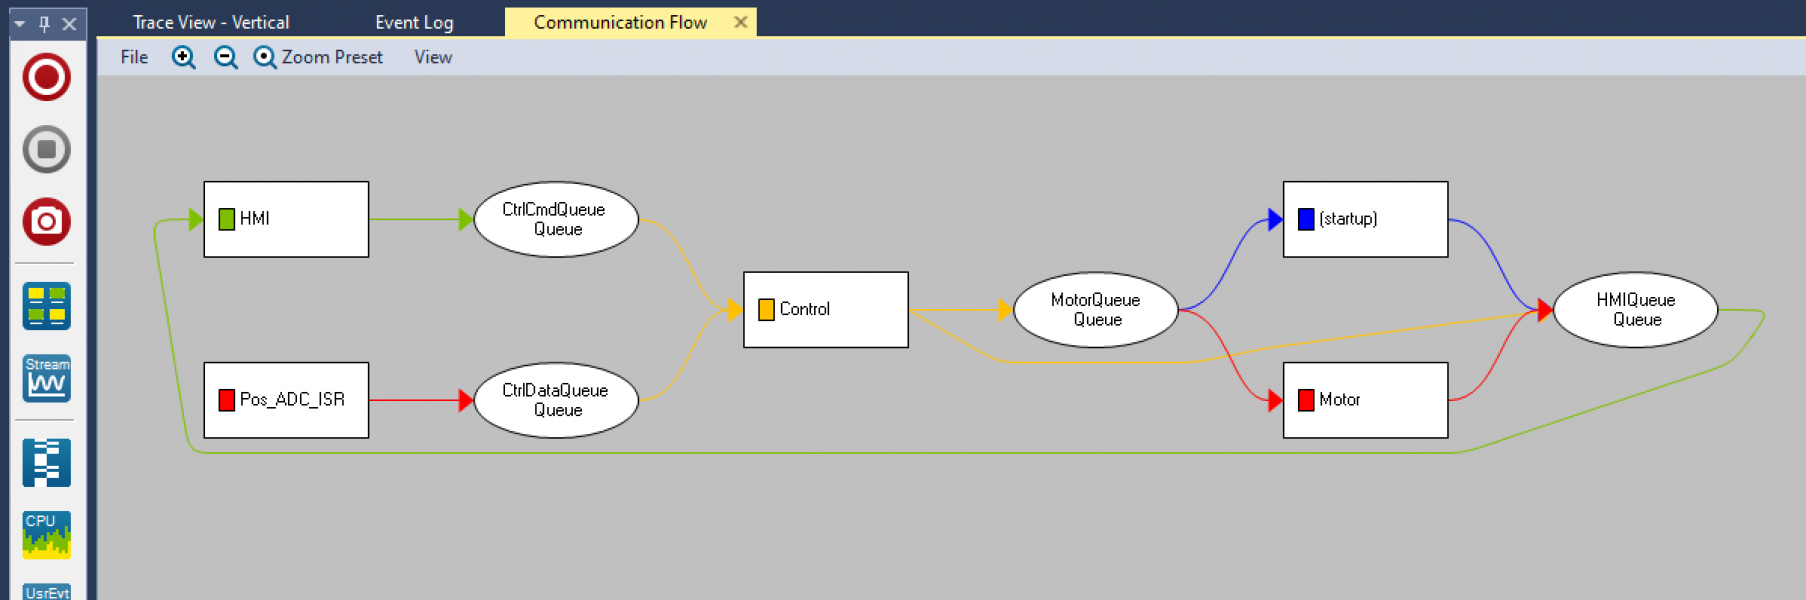 A screen shot of the FreeRTOS+Trace communication flow view